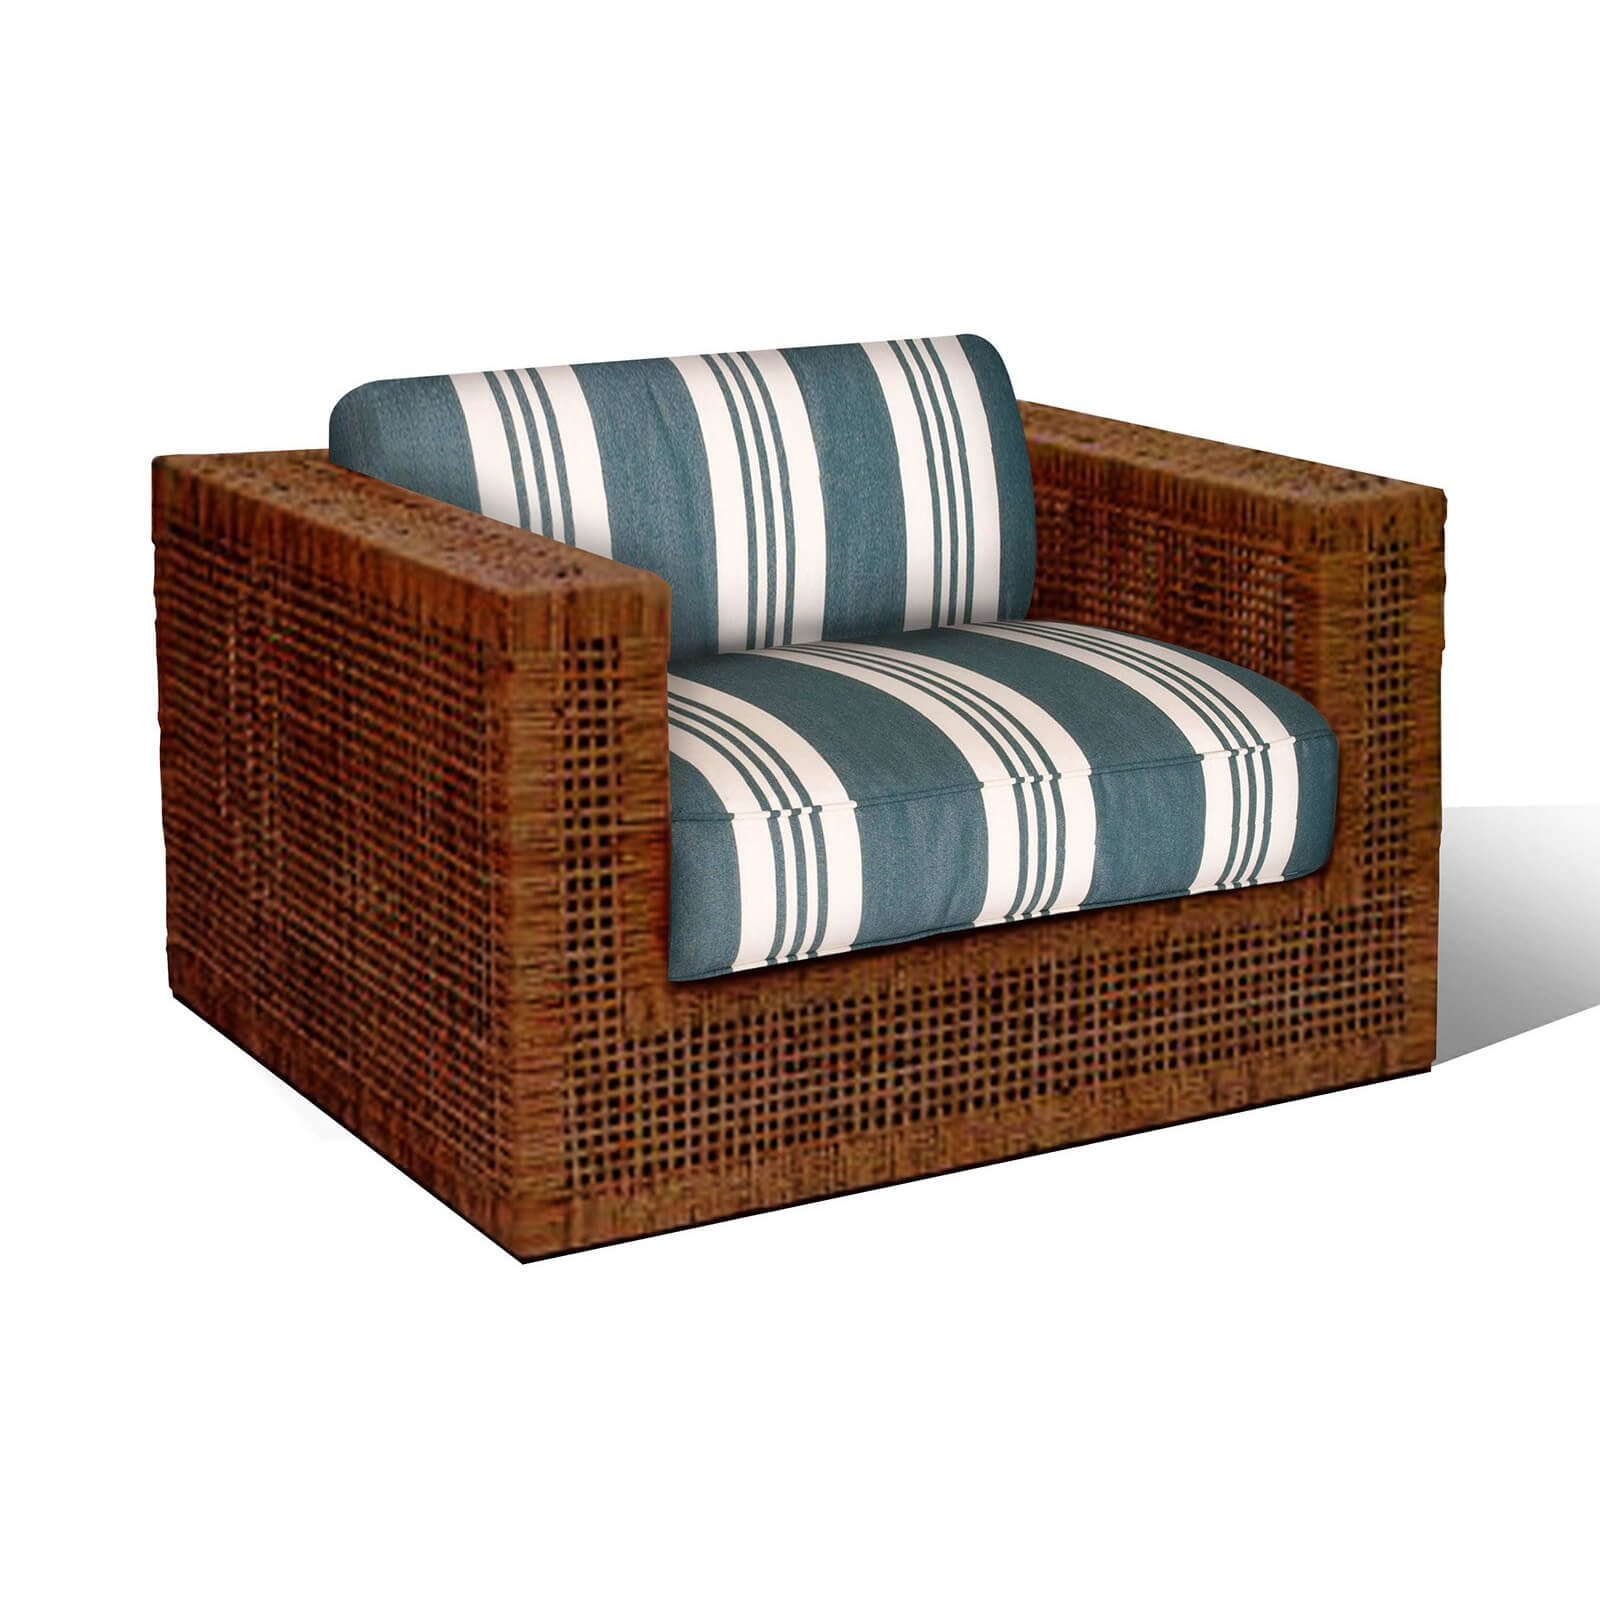 HARBOR ISLAND CLUB CHAIR 1 - STUART MEMBERY HOME COLLECTION